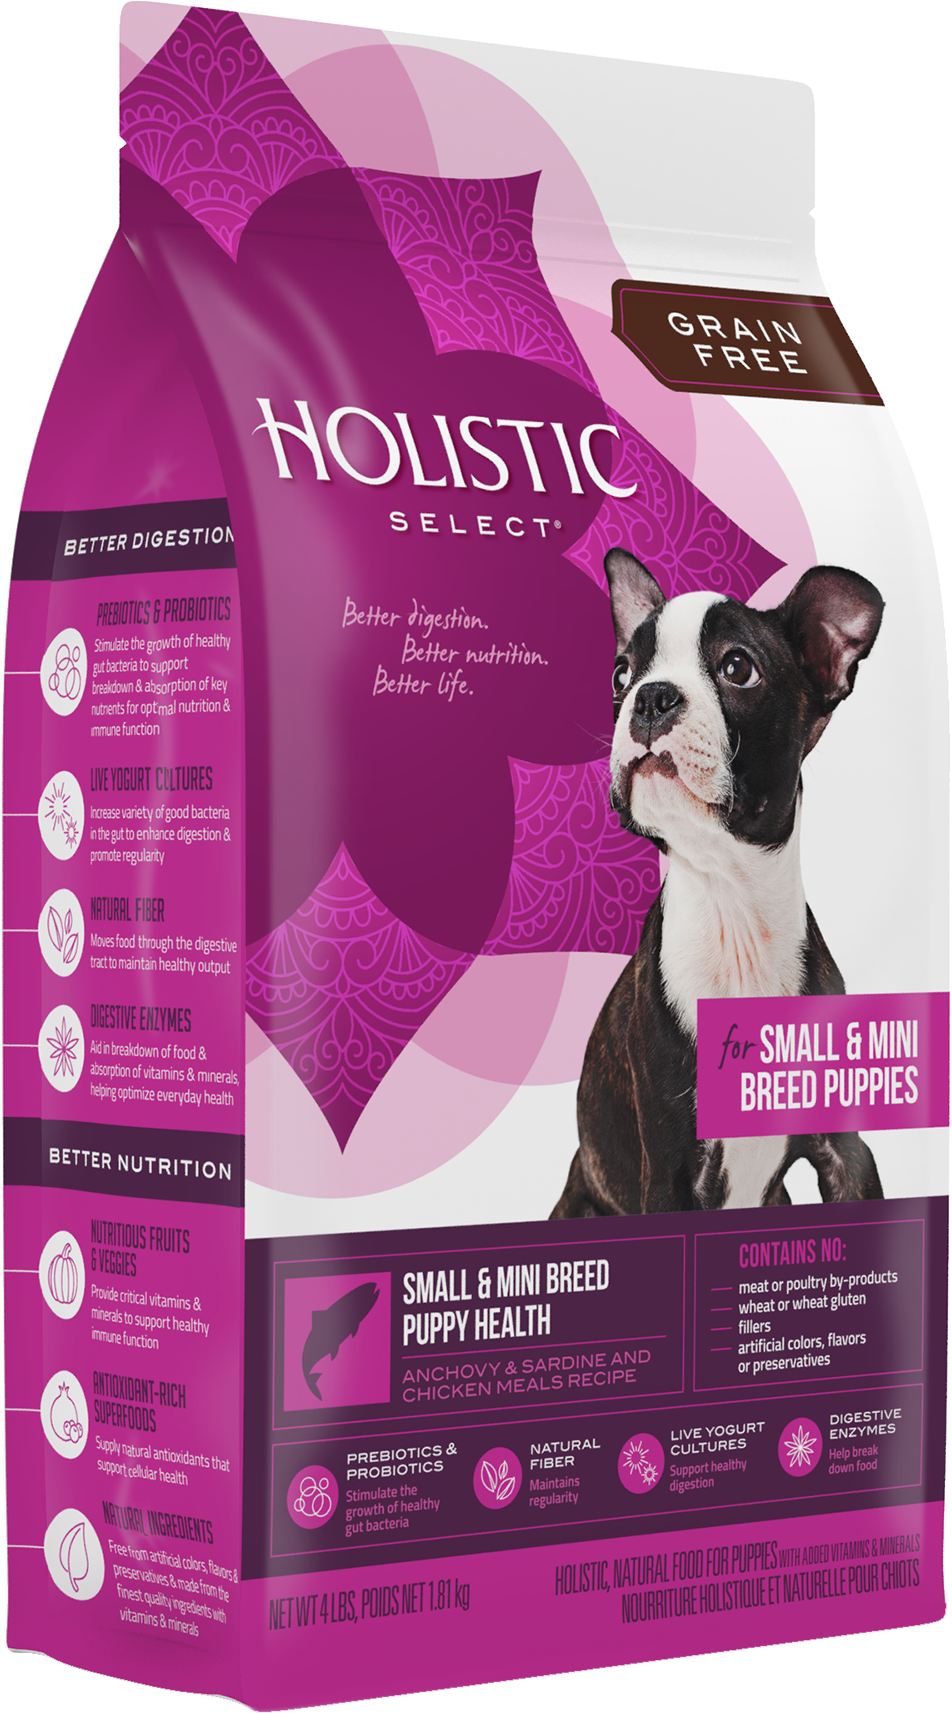 Holistic Select Grain Free Puppy Small and Mini Breed Dry Food